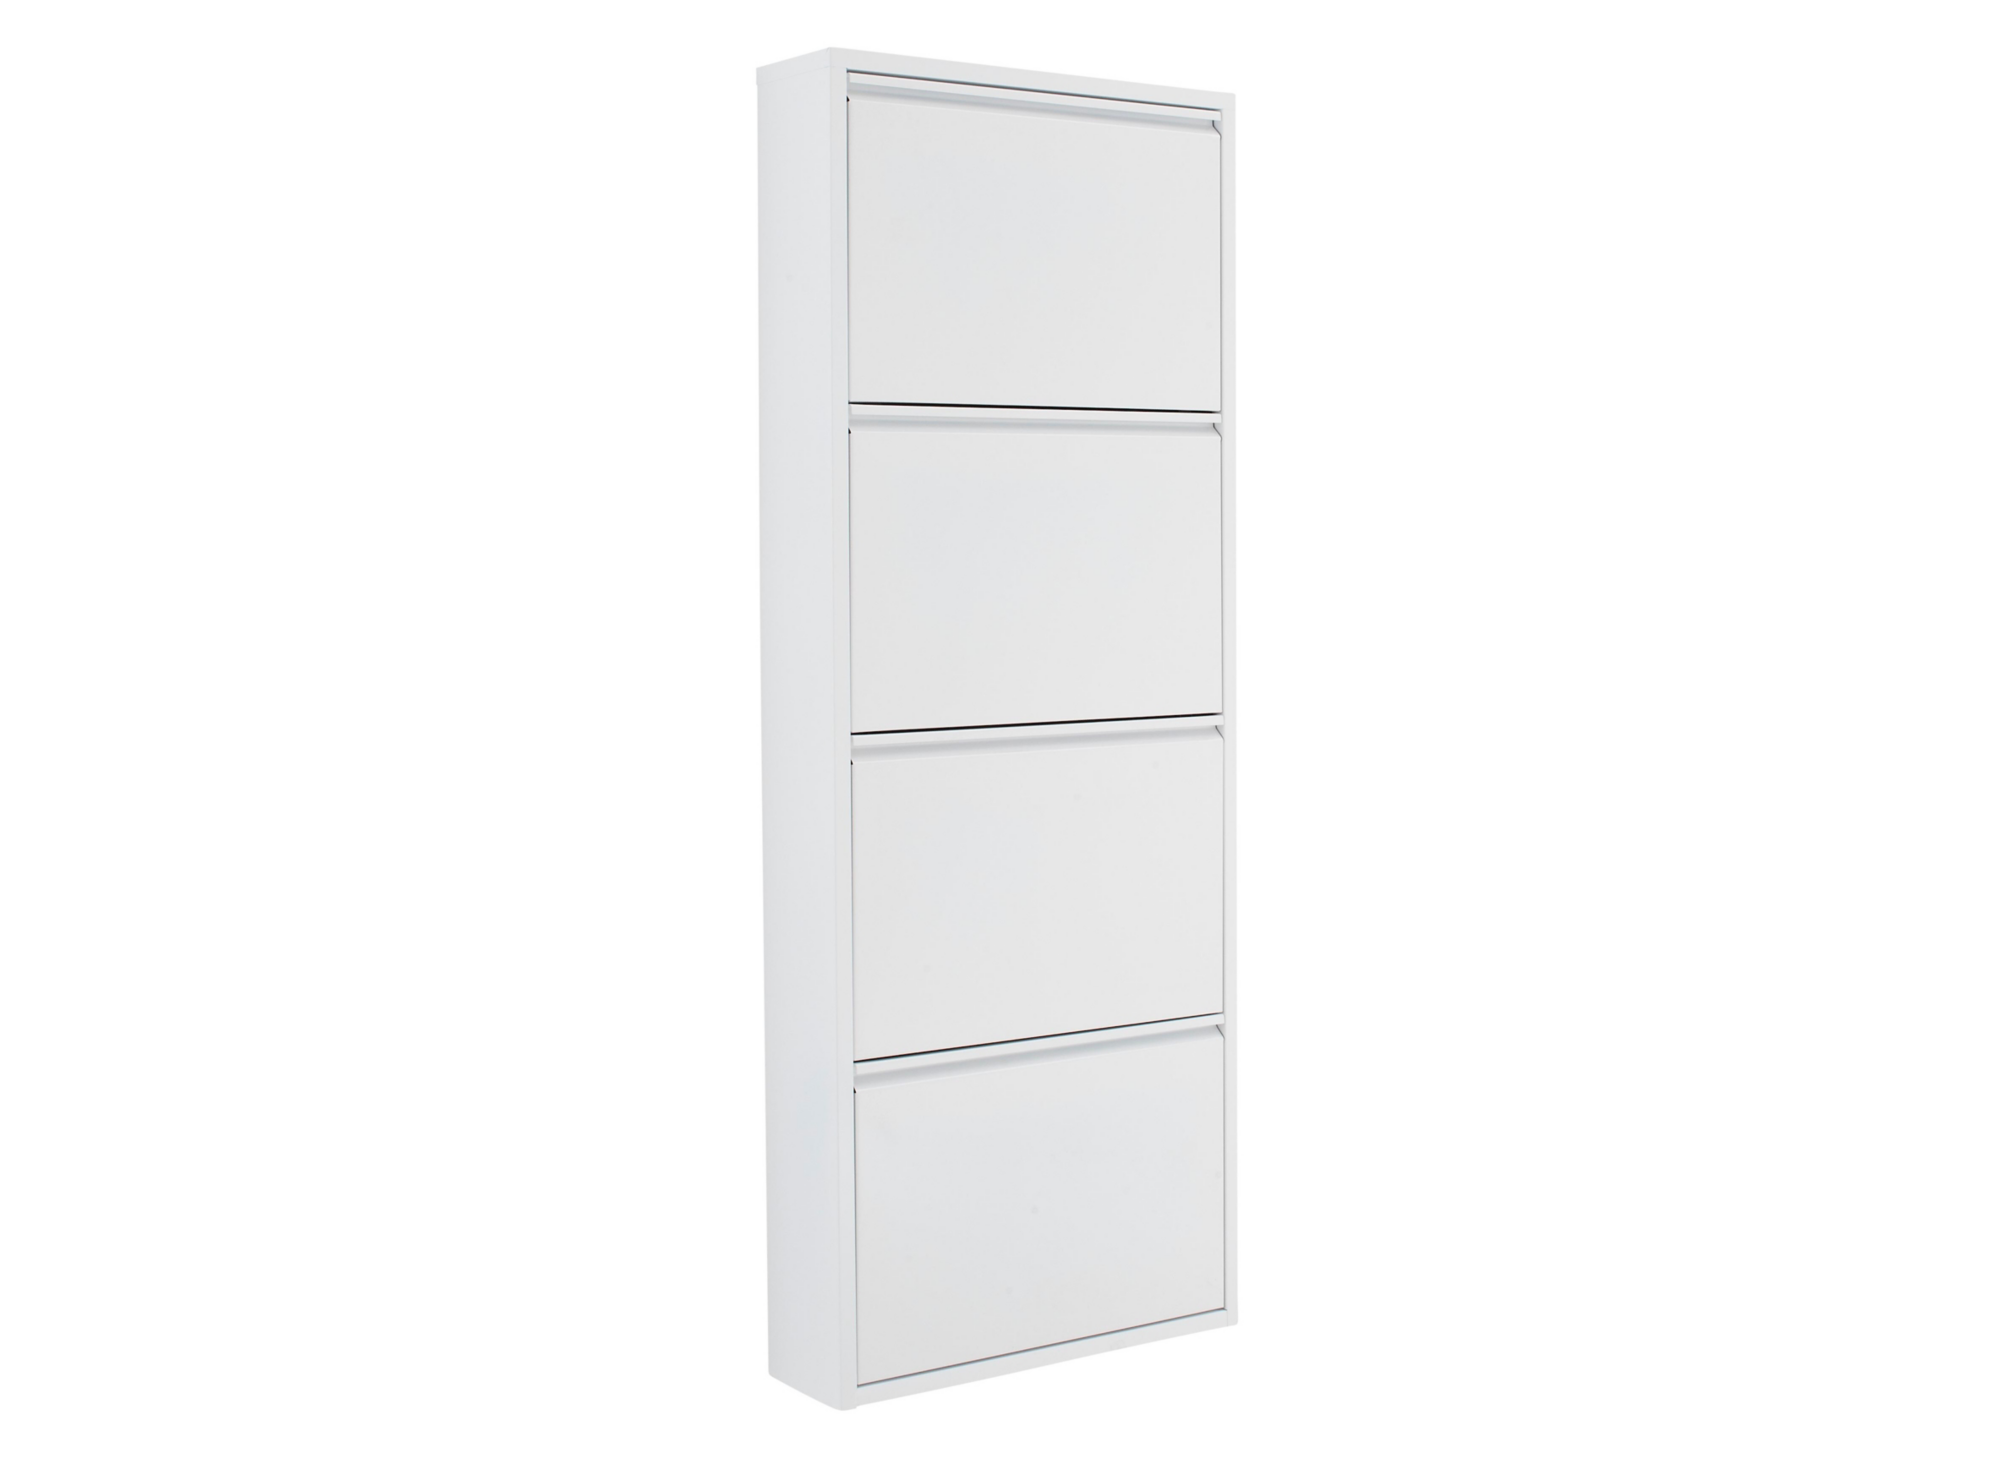 meuble a chaussures 4 abattants blanc meuble chaussures rangement meuble fly. Black Bedroom Furniture Sets. Home Design Ideas